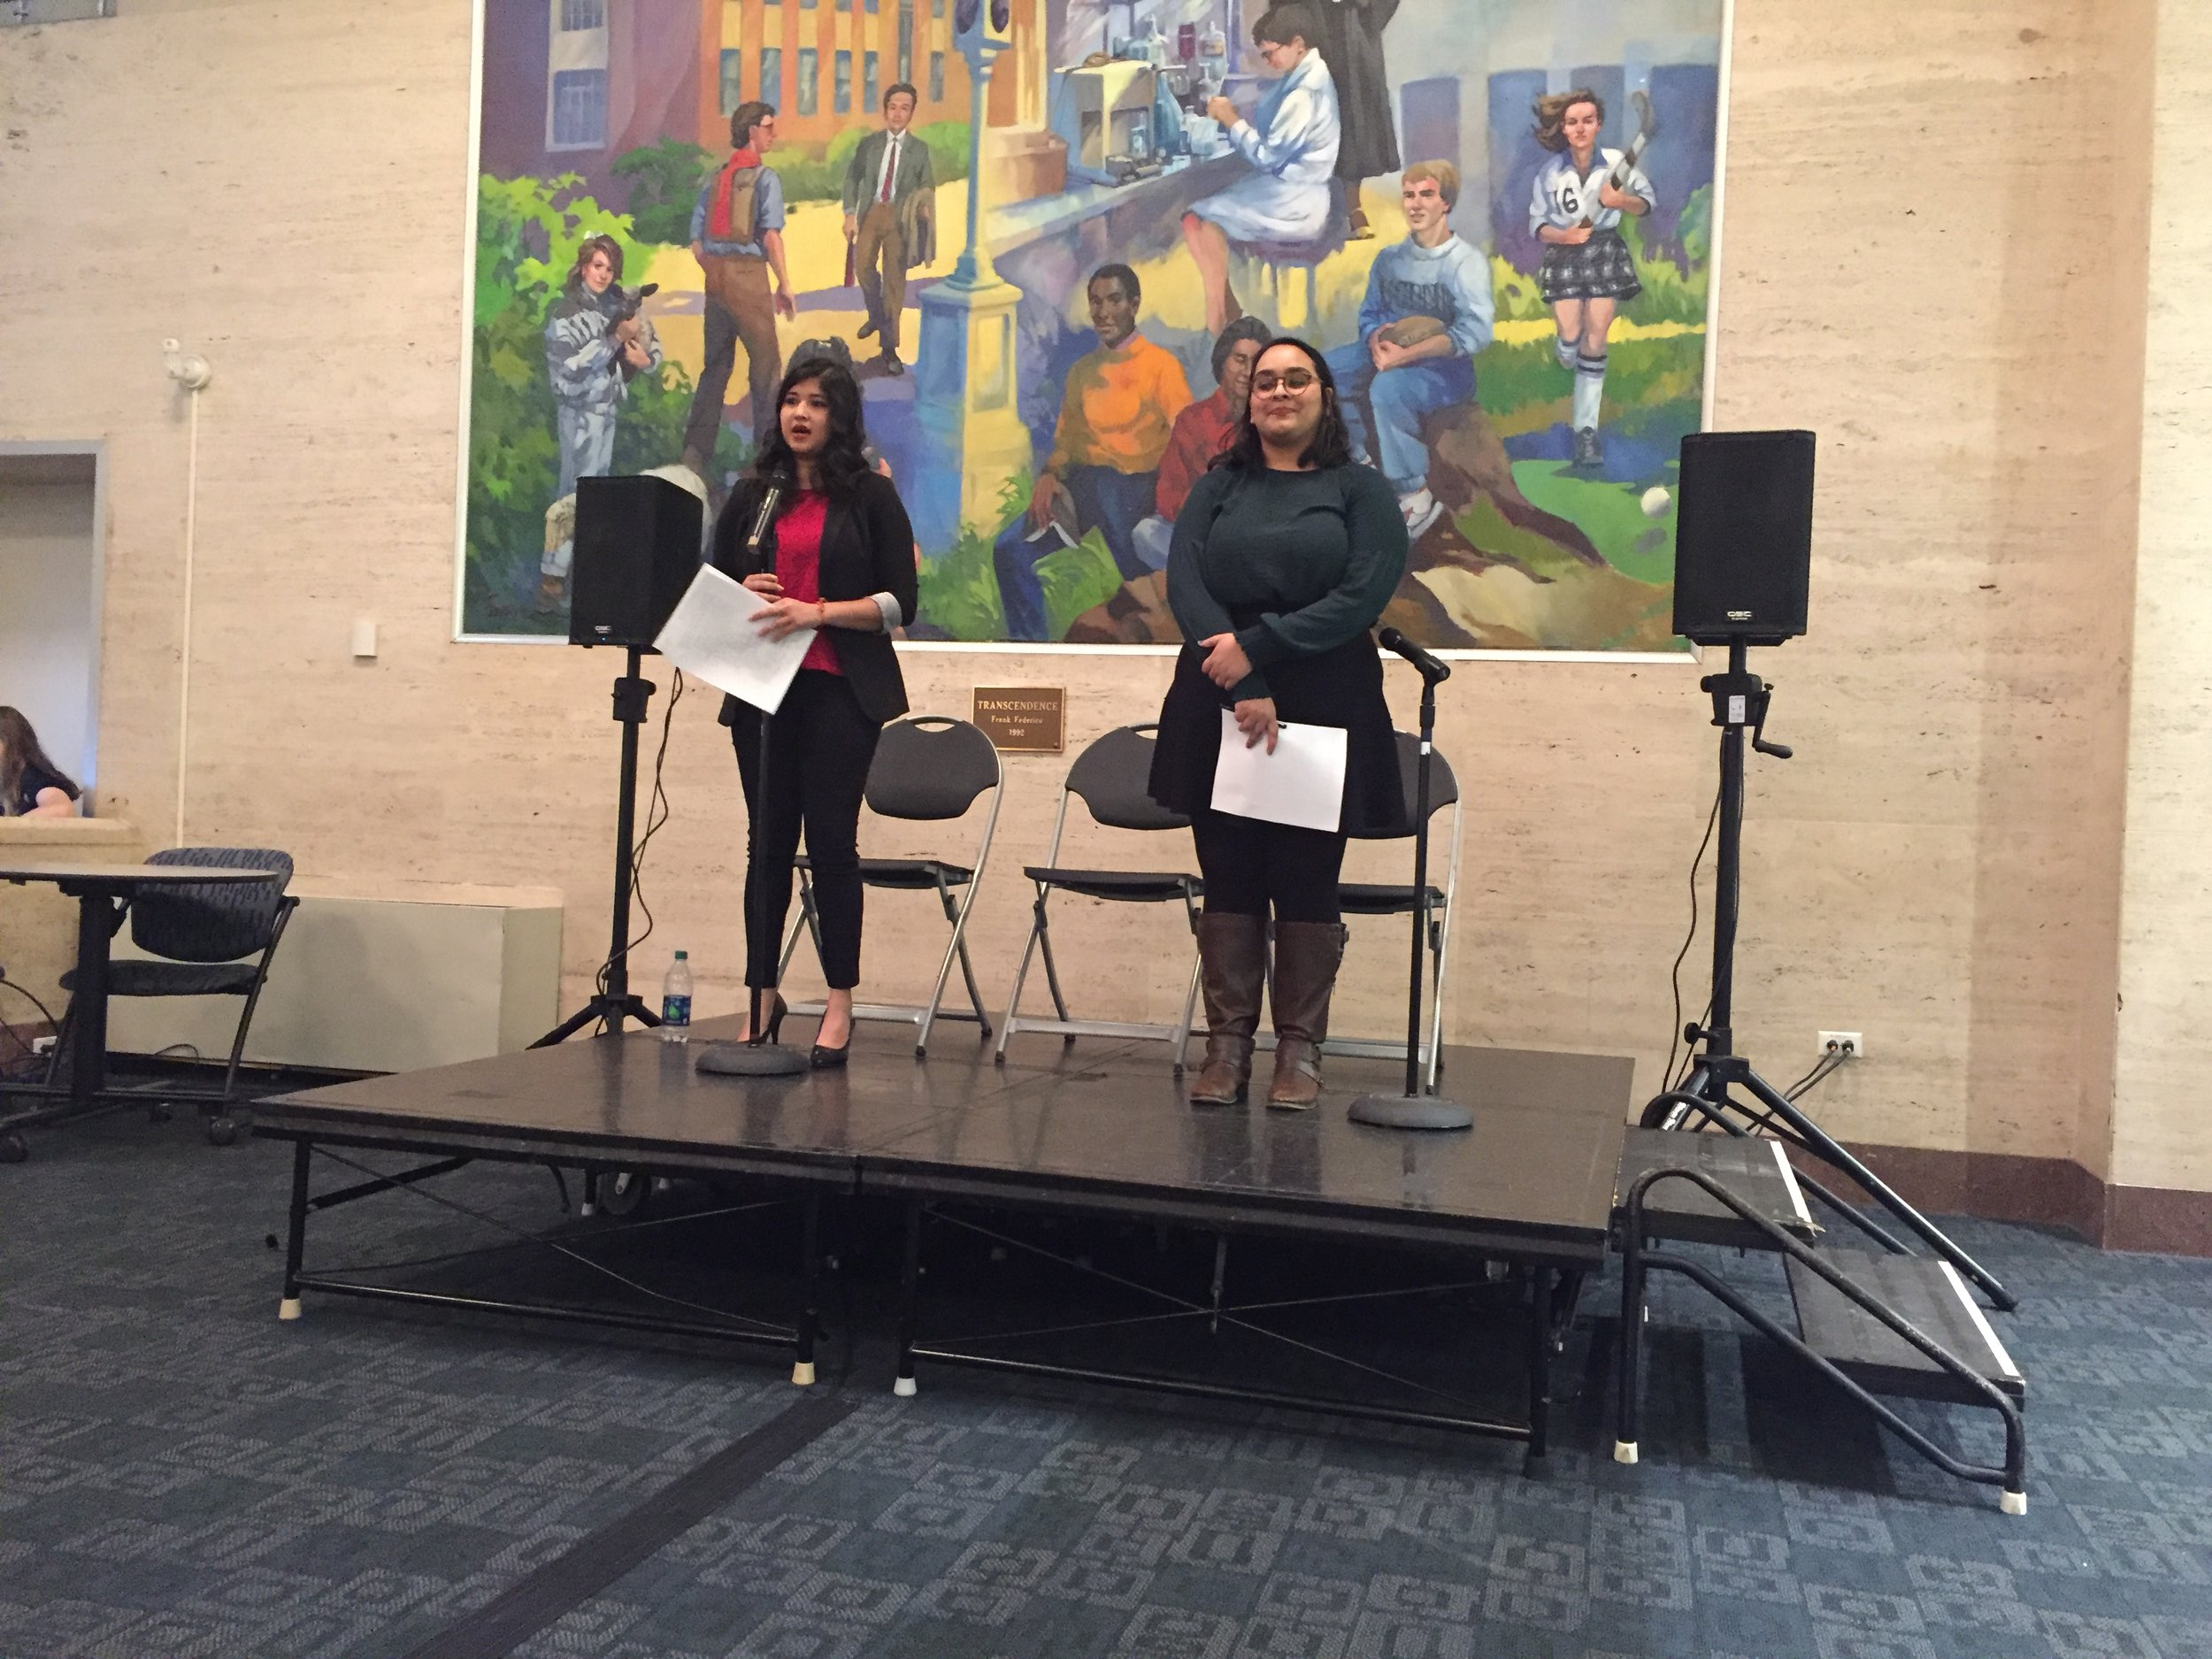 Both Richa Jain and Priyanka Thakkar, another comptroller candidate and Vice Chair of the USG Outreach Committee, shared policy objectives of curbing excessive USG spending in order to make more funding available for student groups.(Anna Zarra Aldrich/The Daily Campus)